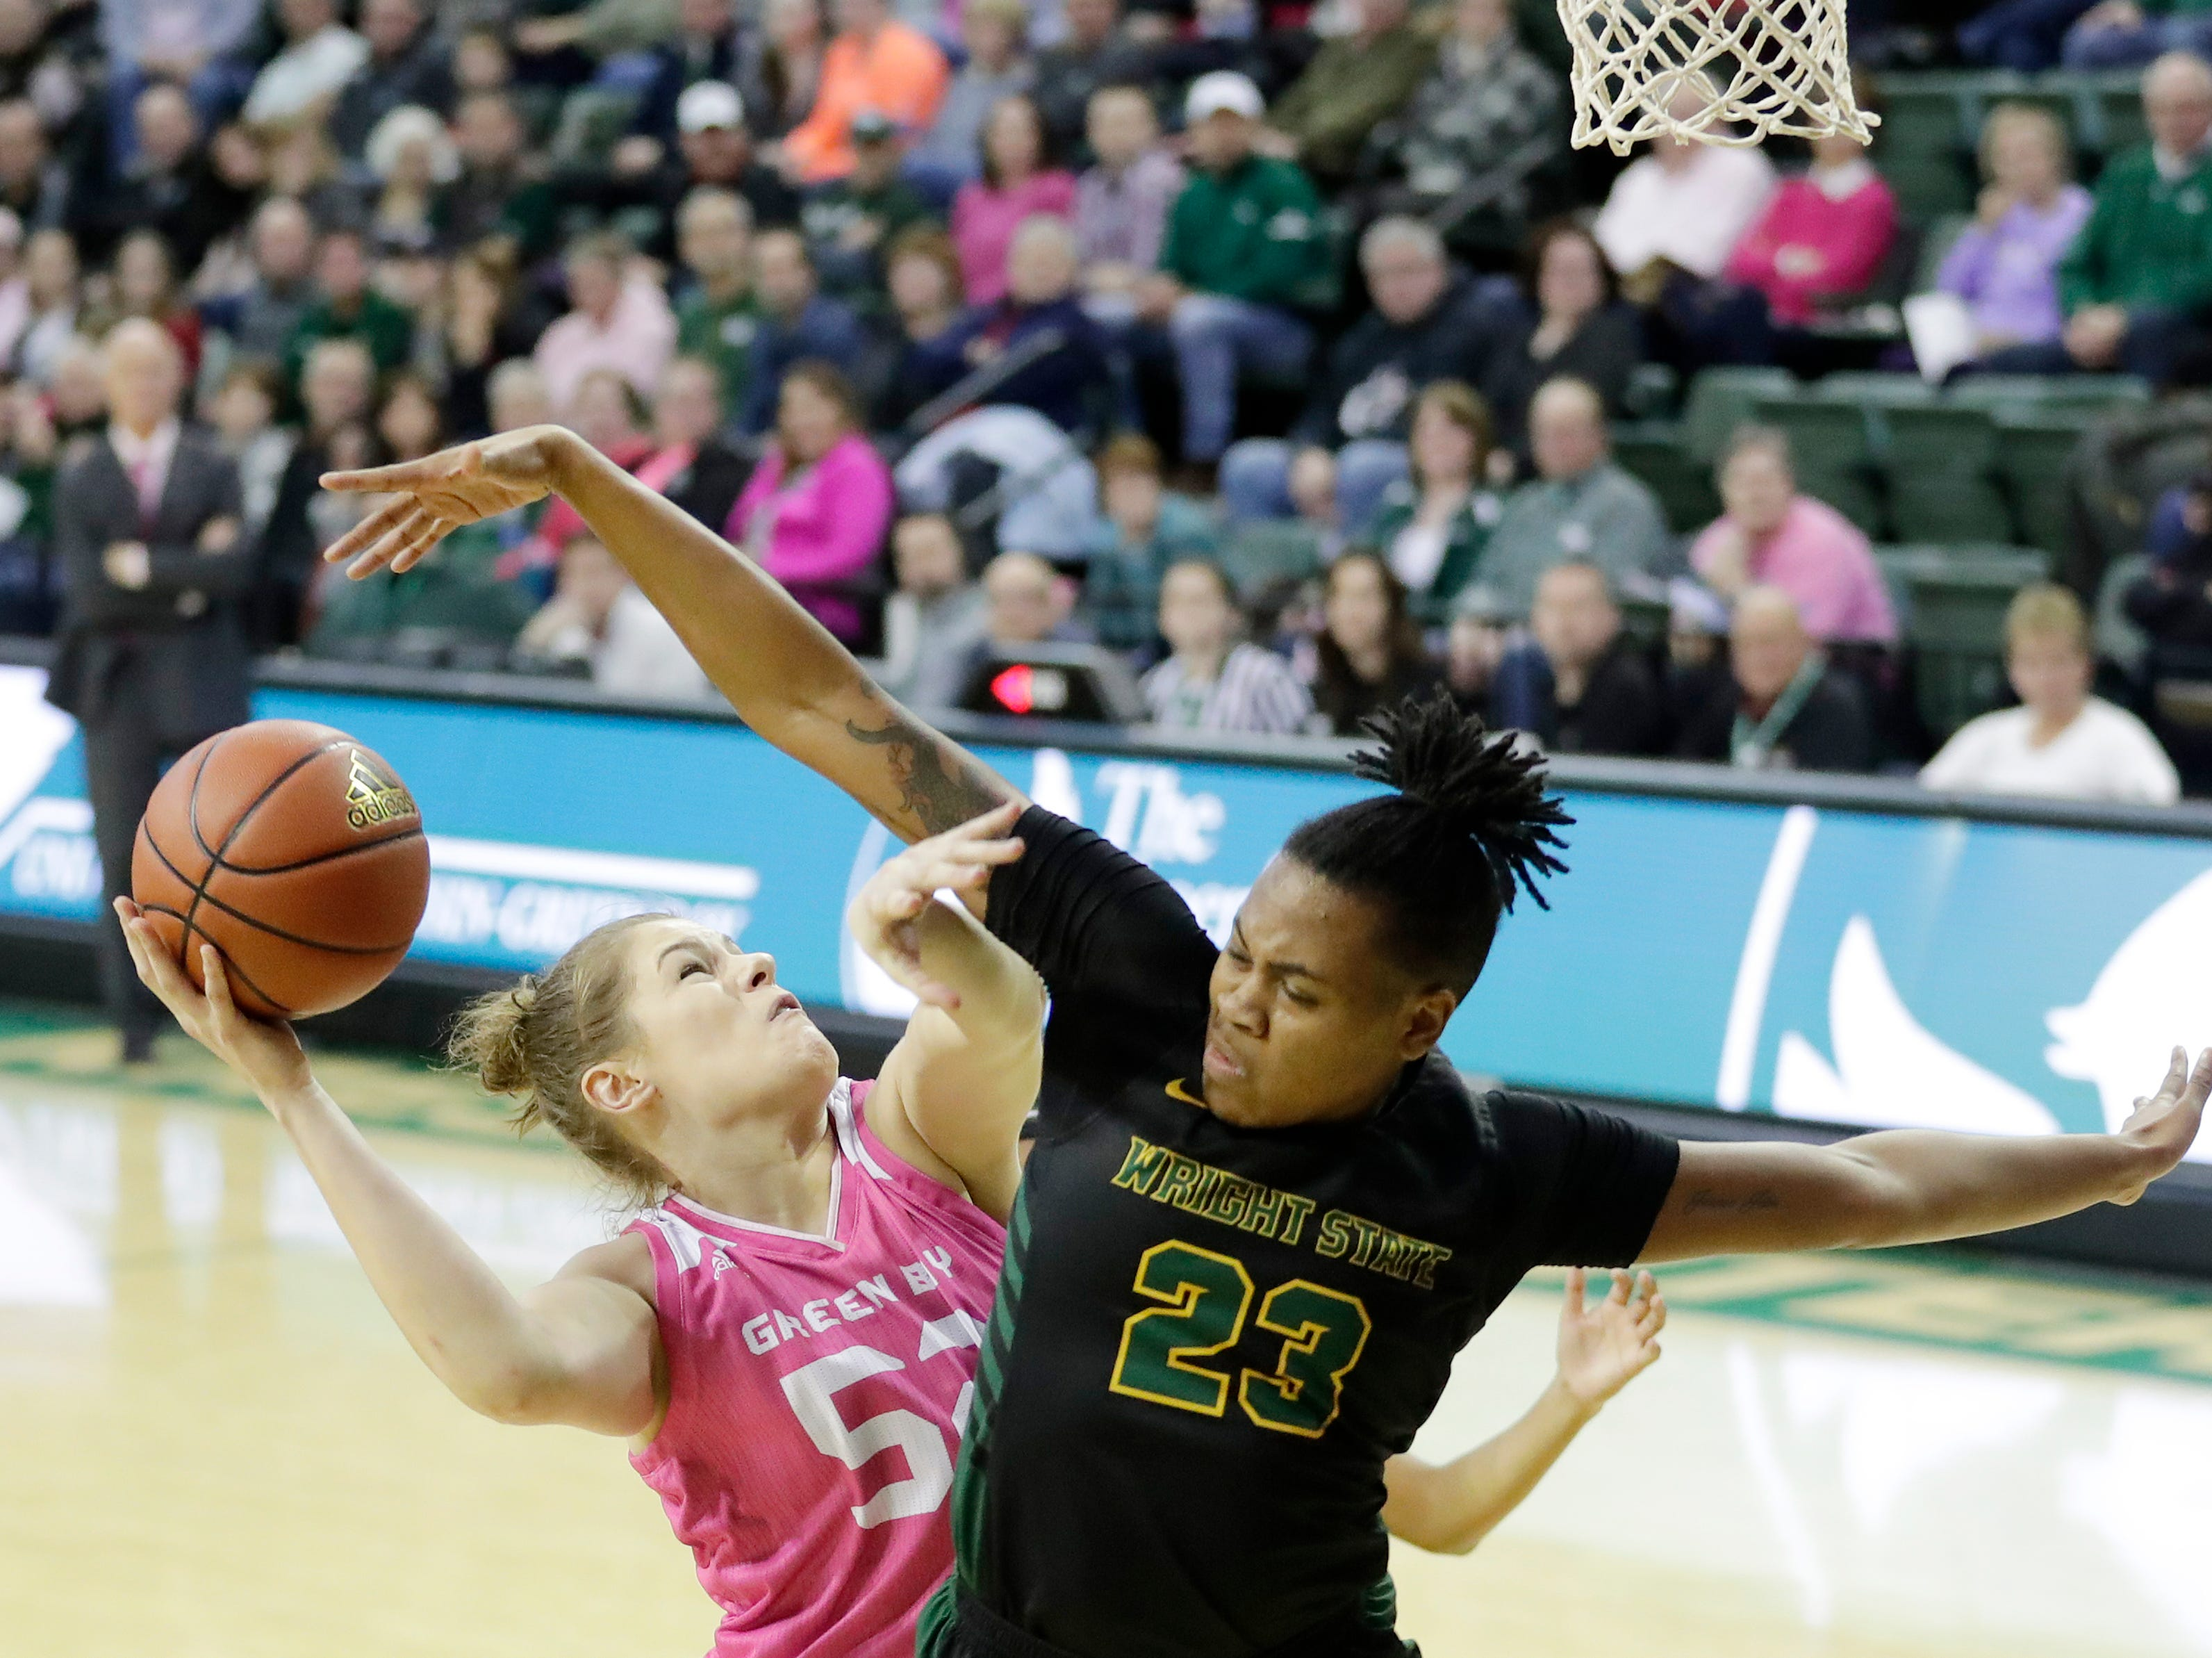 Green Bay Phoenix forward/center Madison Wolf (52) draws a foul by Wright State Raiders guard Symone Simmons (23) in a Horizon League women's basketball game at the Kress Center on Saturday, February 9, 2019 in Green Bay, Wis.